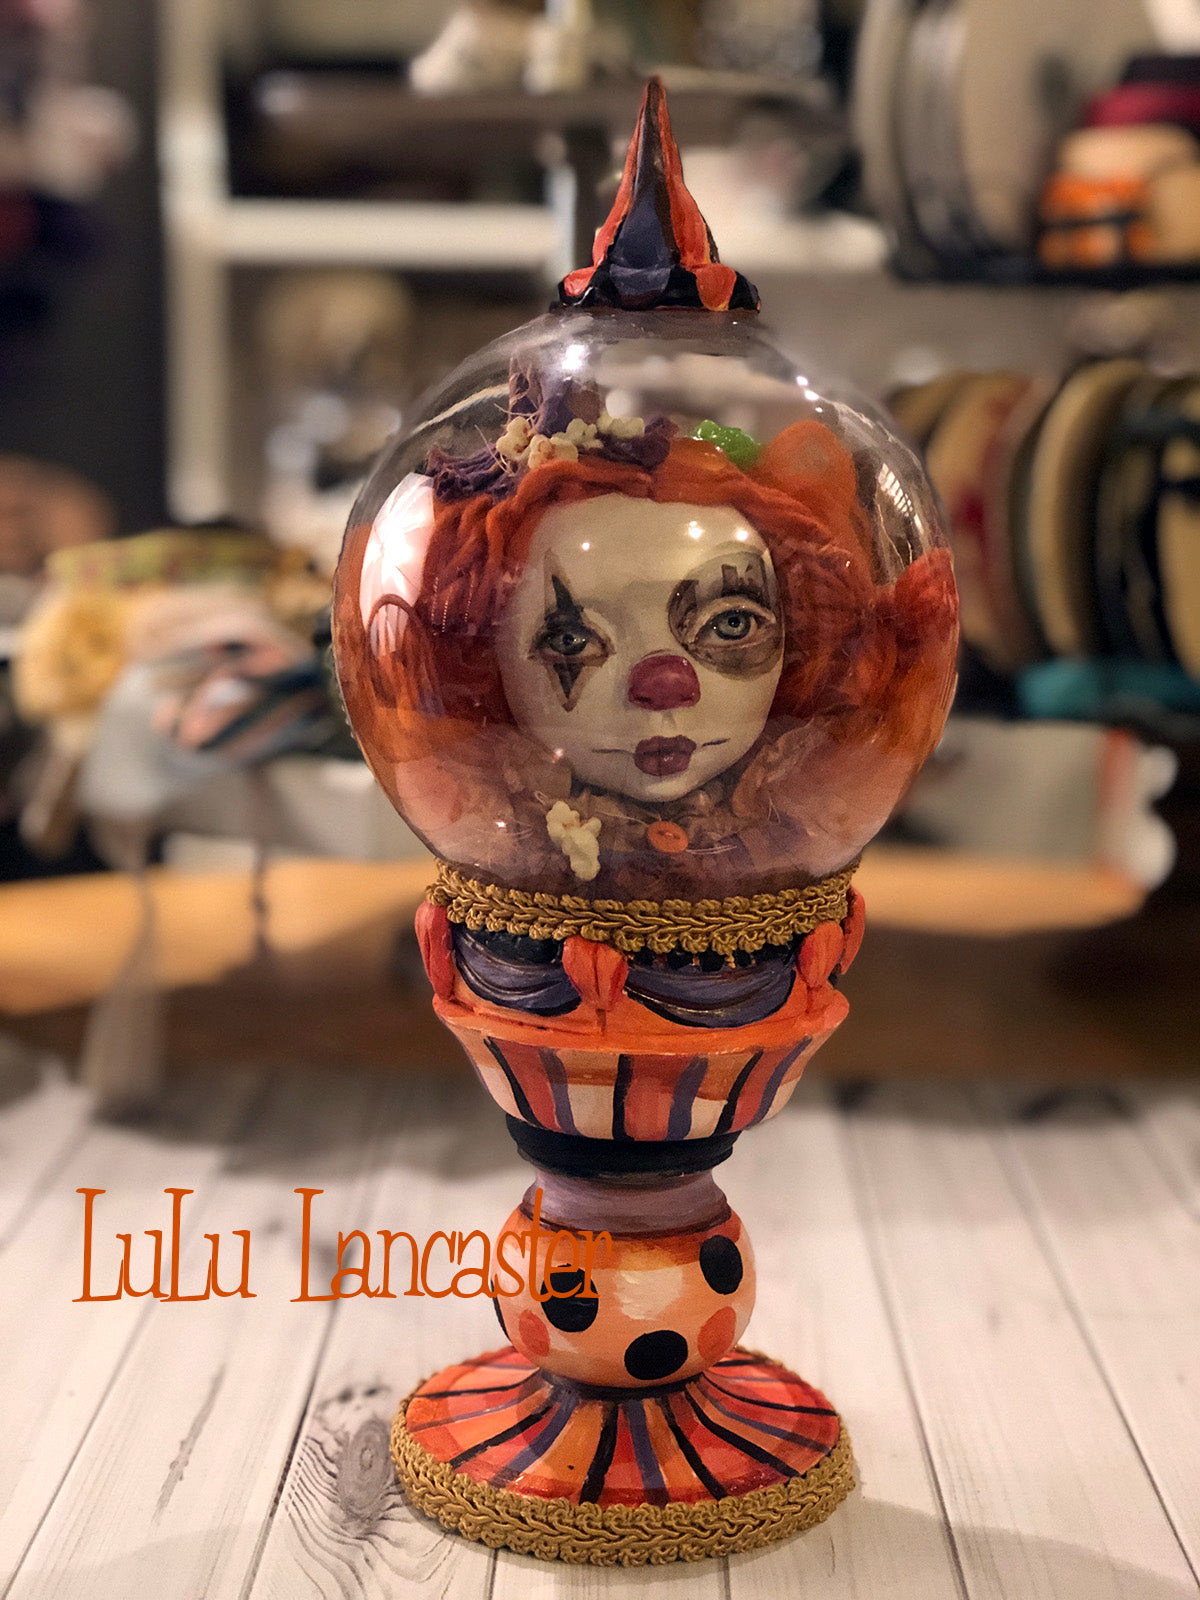 PipPoP Circus Clown Globe Original Art Doll by LuLu Lancaster